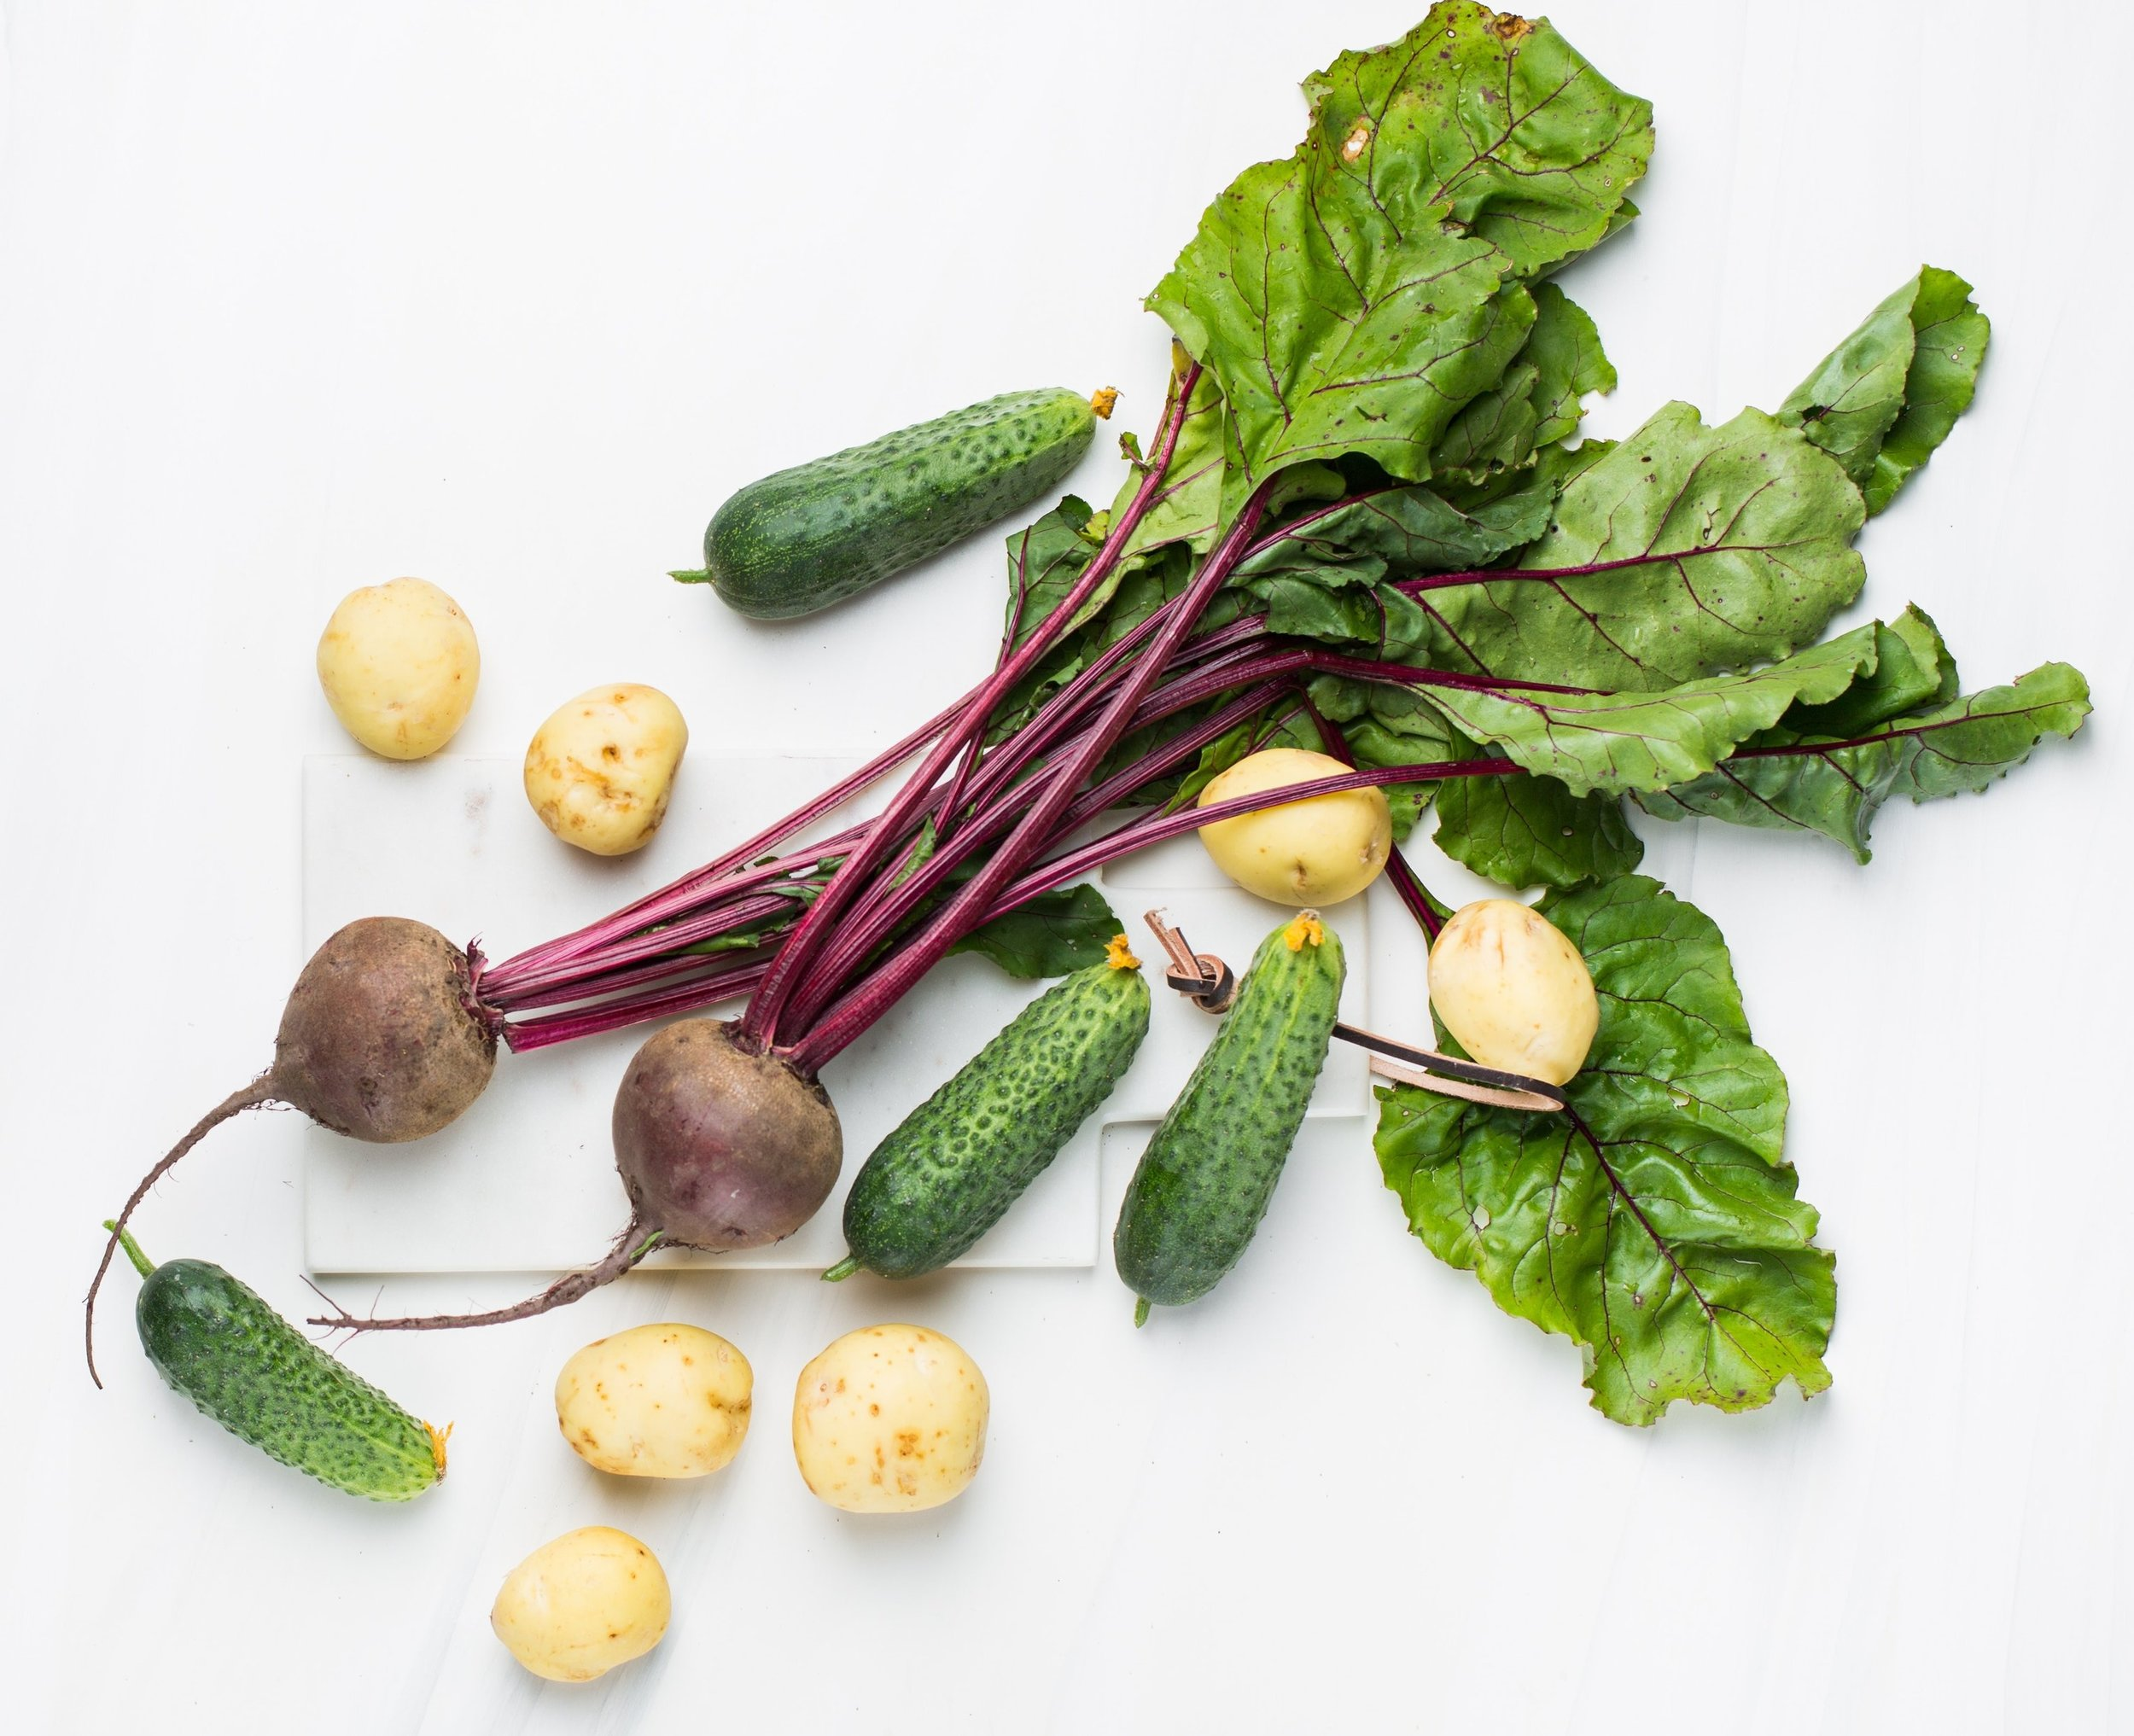 beets-close-up-cooking-2611818.jpg